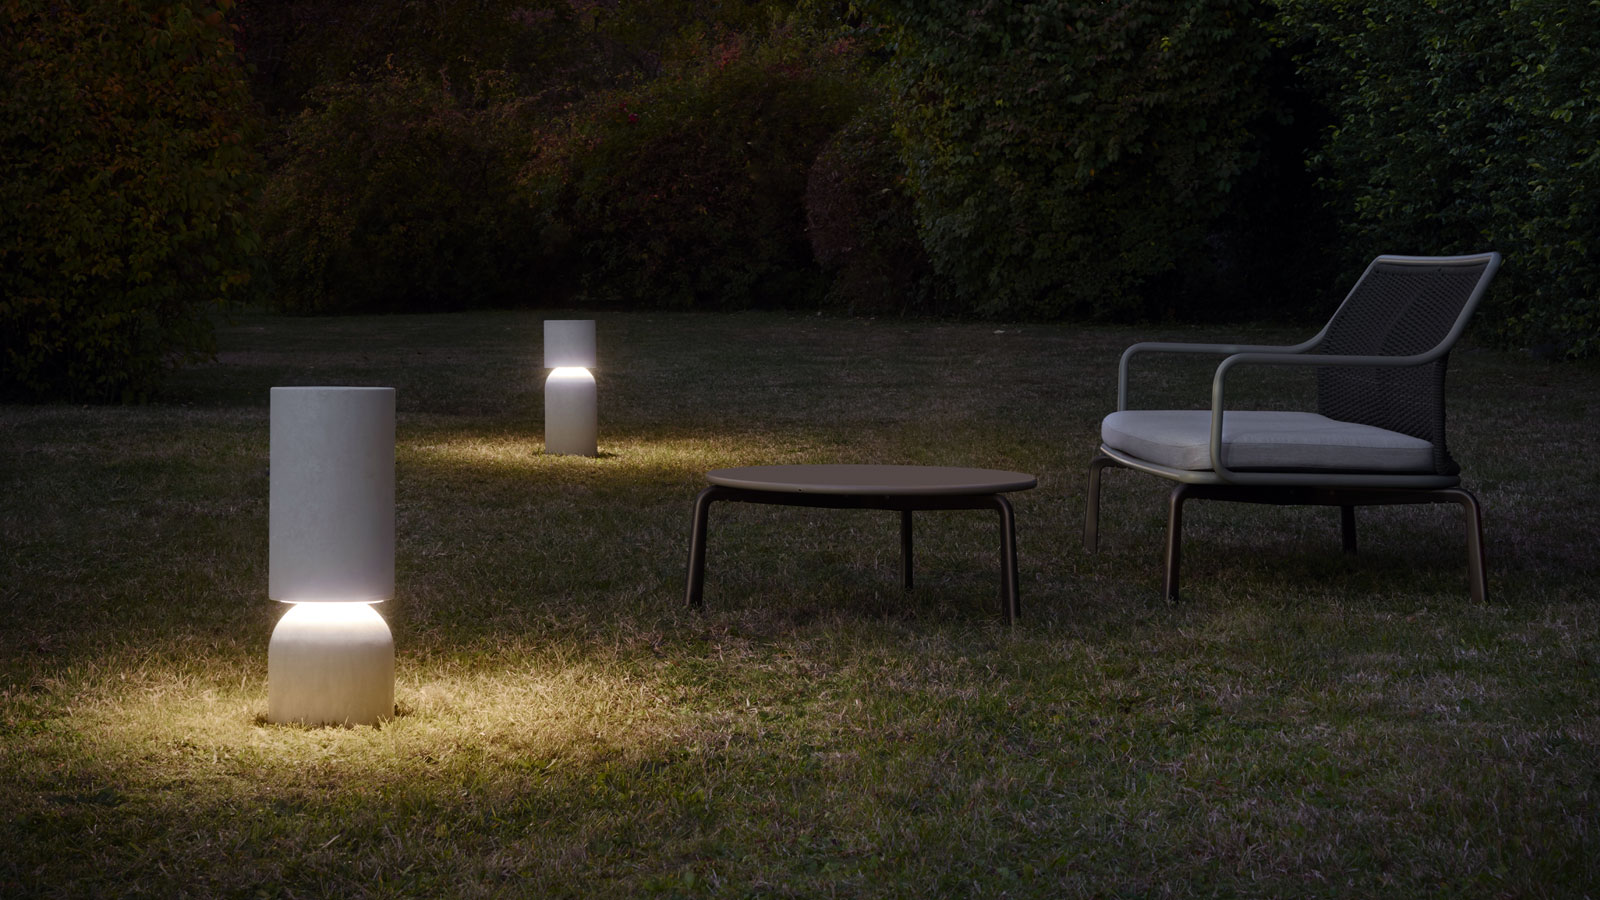 Nui outdoor lighting from Luceplan